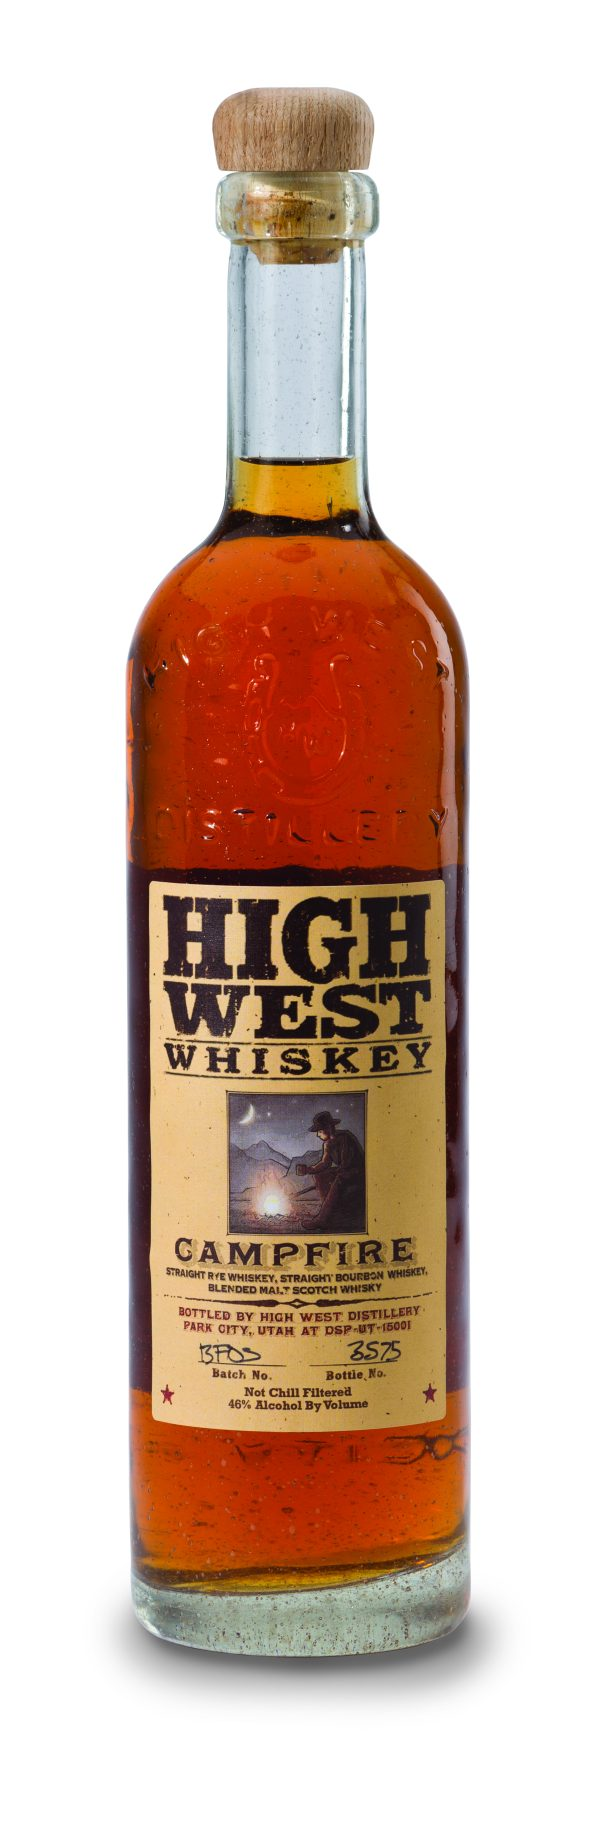 High West Distillery Campfire Whiskey 92 Proof